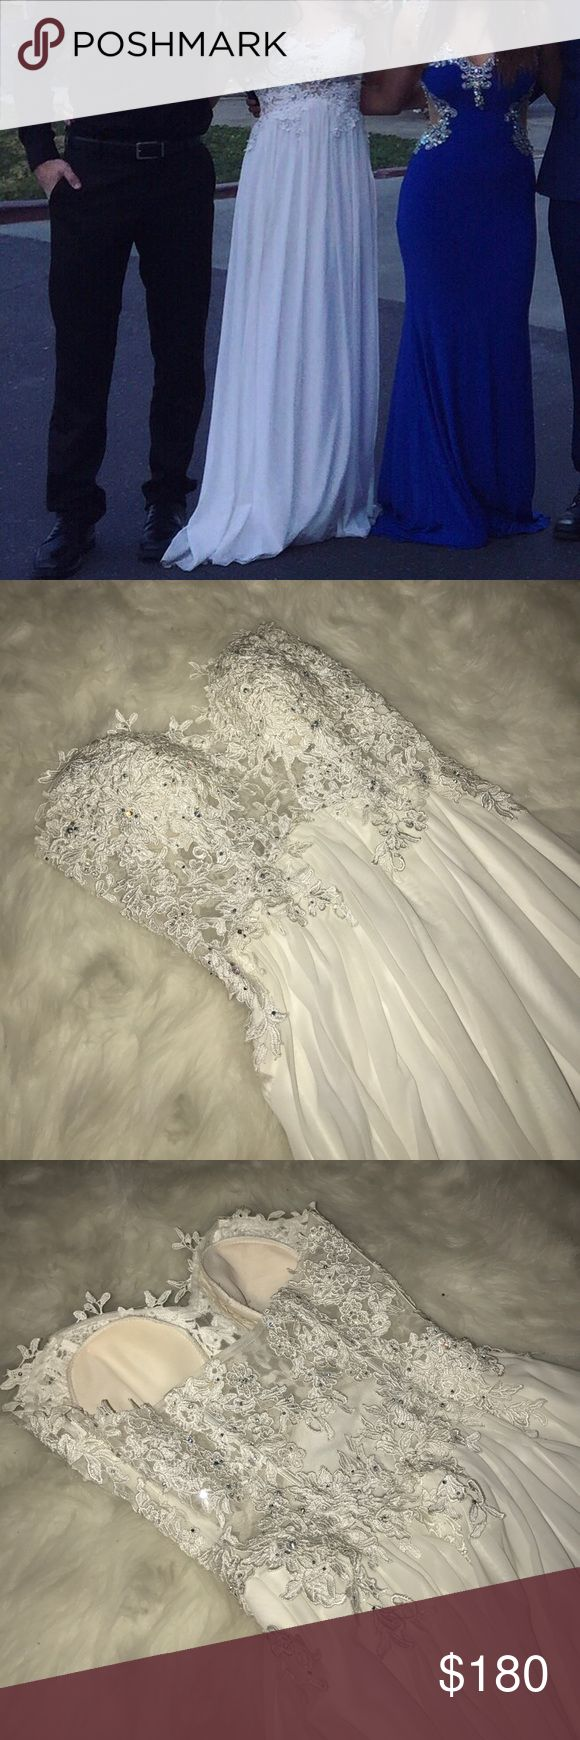 White Jovani Prom Dress Worn only twice and not altered! Very comfy dress and beautiful! I have no dry cleaned it so I will include that in the price unless you would personally like to dry clean it yourself! It's only the bottom of the dress that really needs the dry cleaning. 👗👗👗 Jovani Dresses Prom